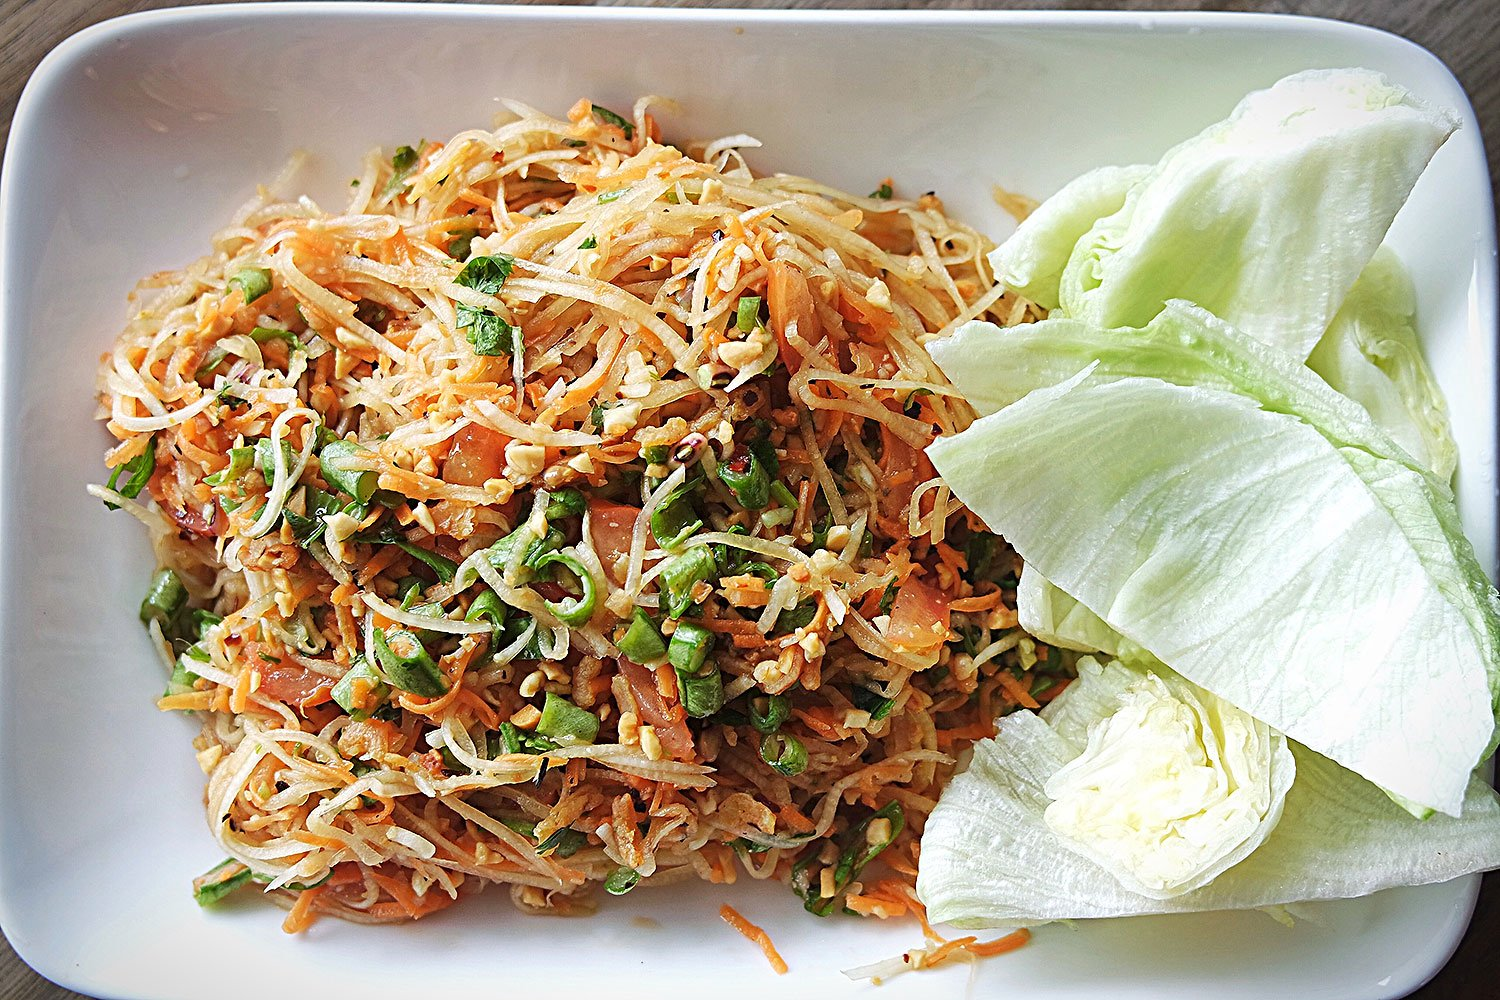 Htin baw thee tho (Spicy Papaya Salad)